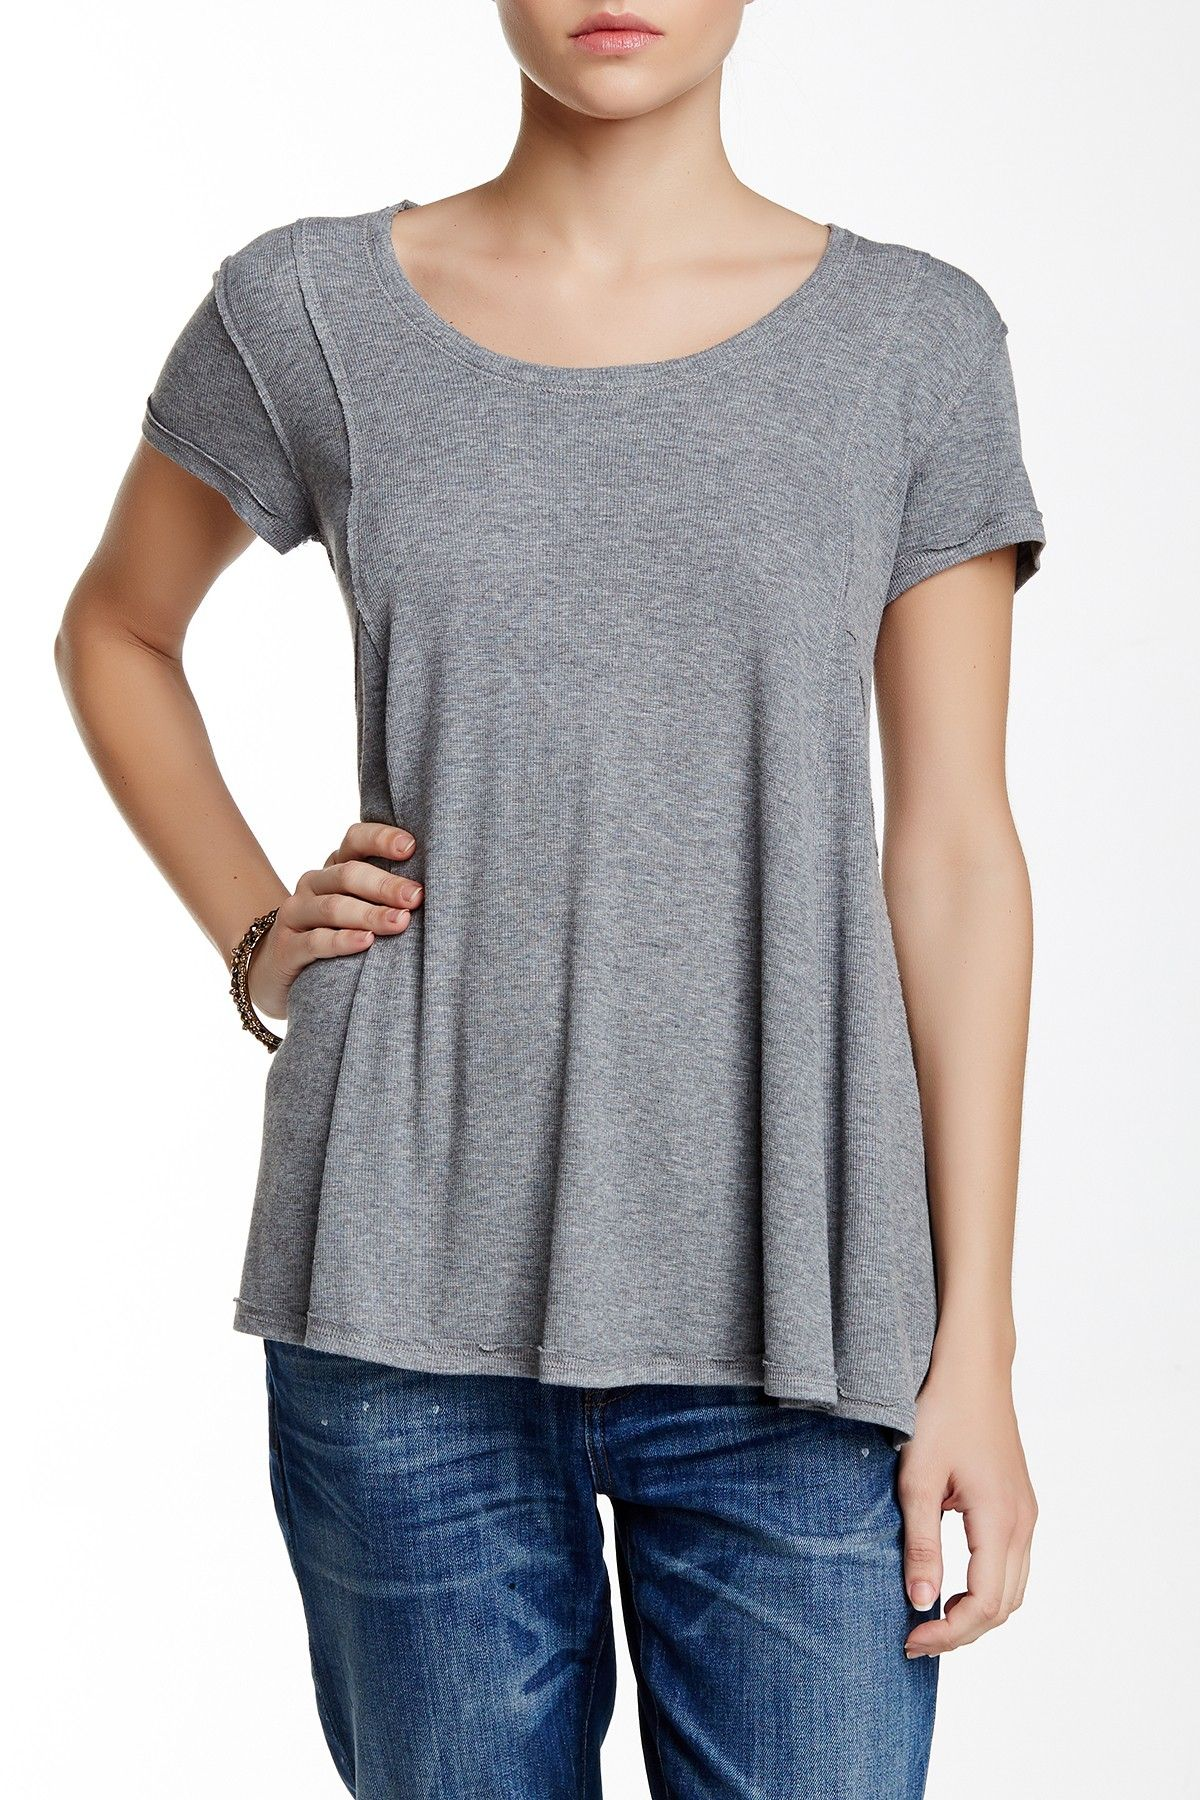 Cap Sleeve Seamed Swing Tee by Heather by Bordeaux on @nordstrom_rack